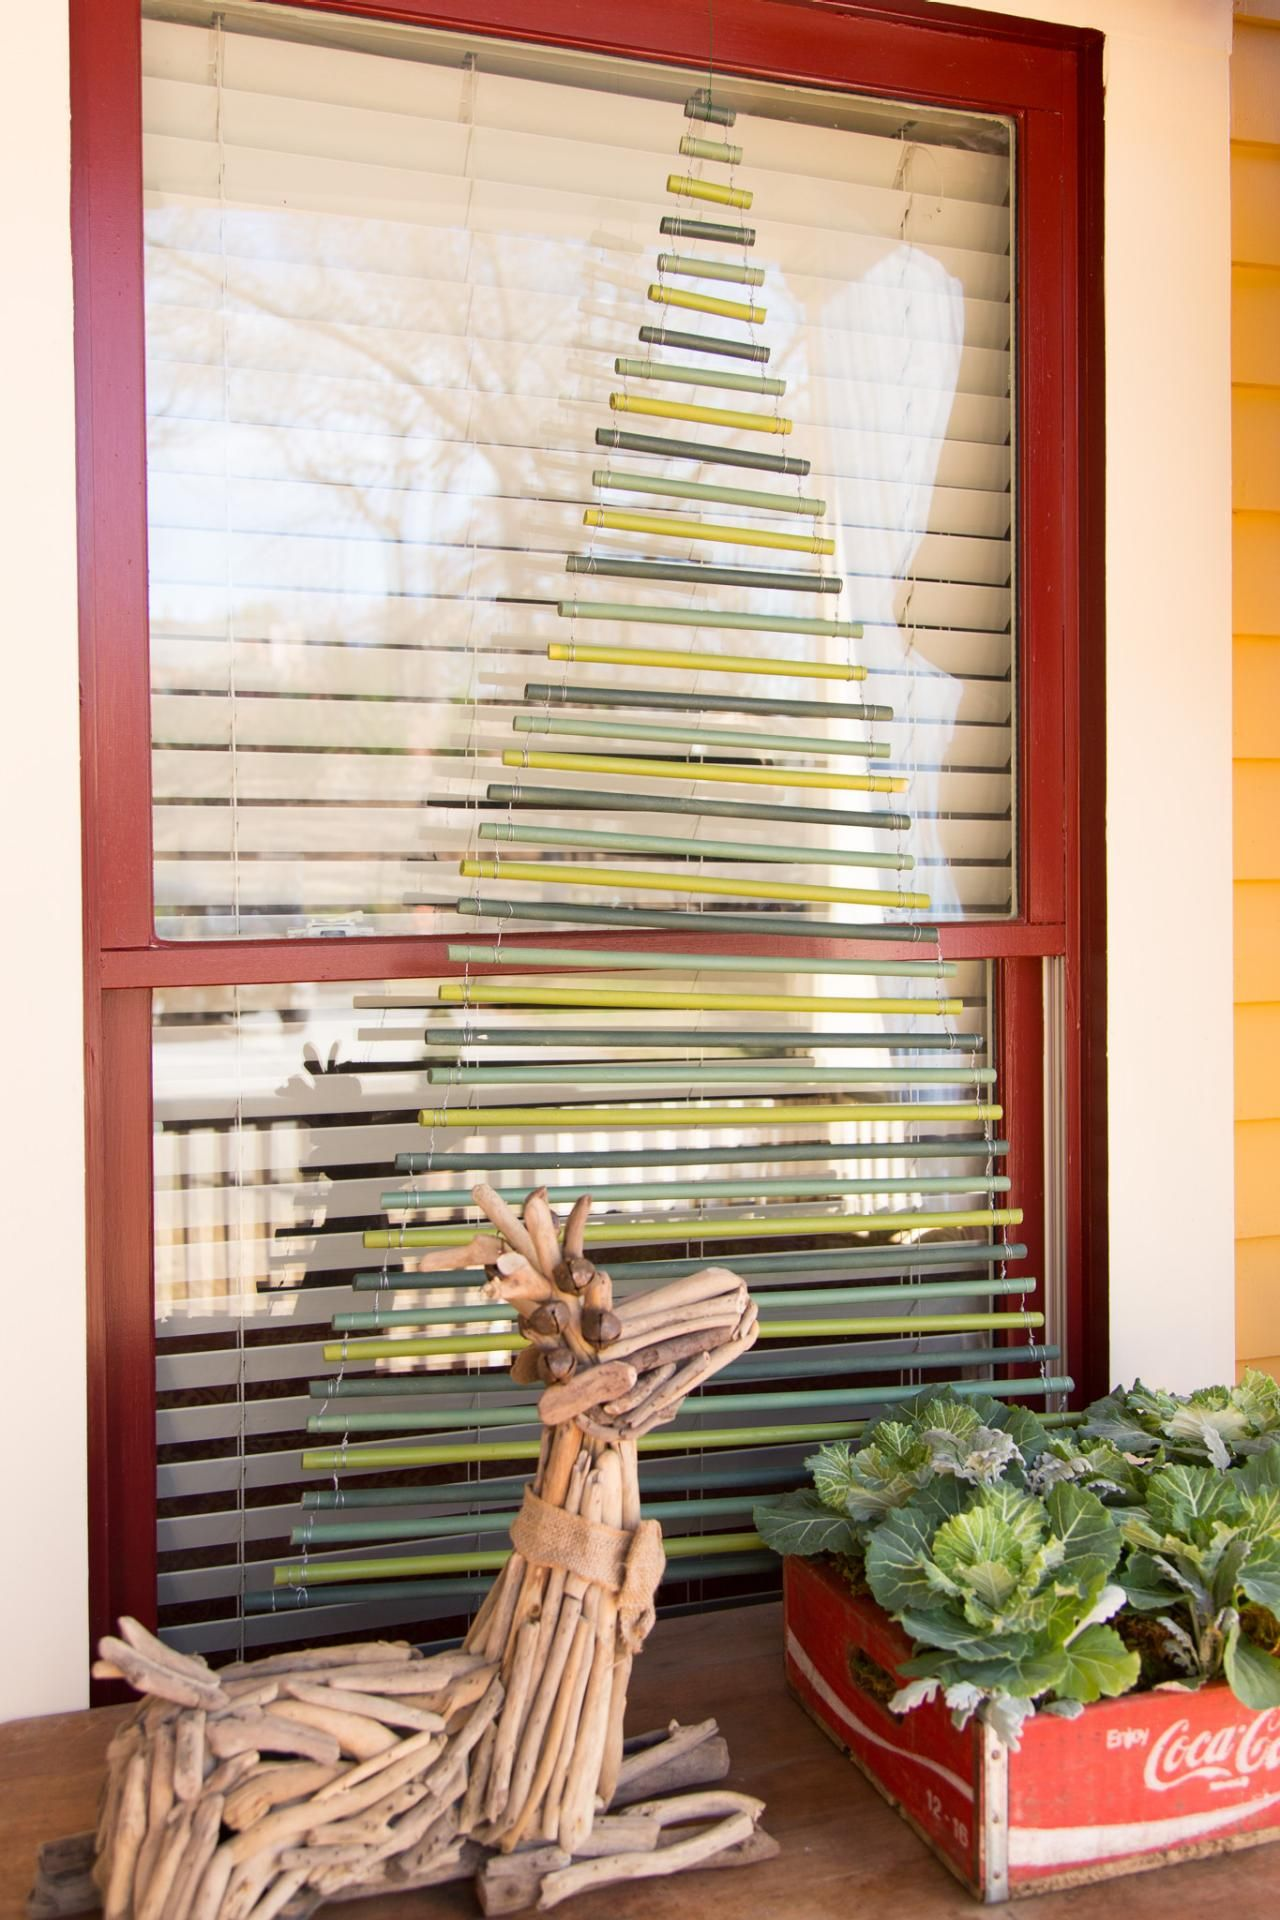 Get a jumpstart on the holidays with these DIY decorating ideas.